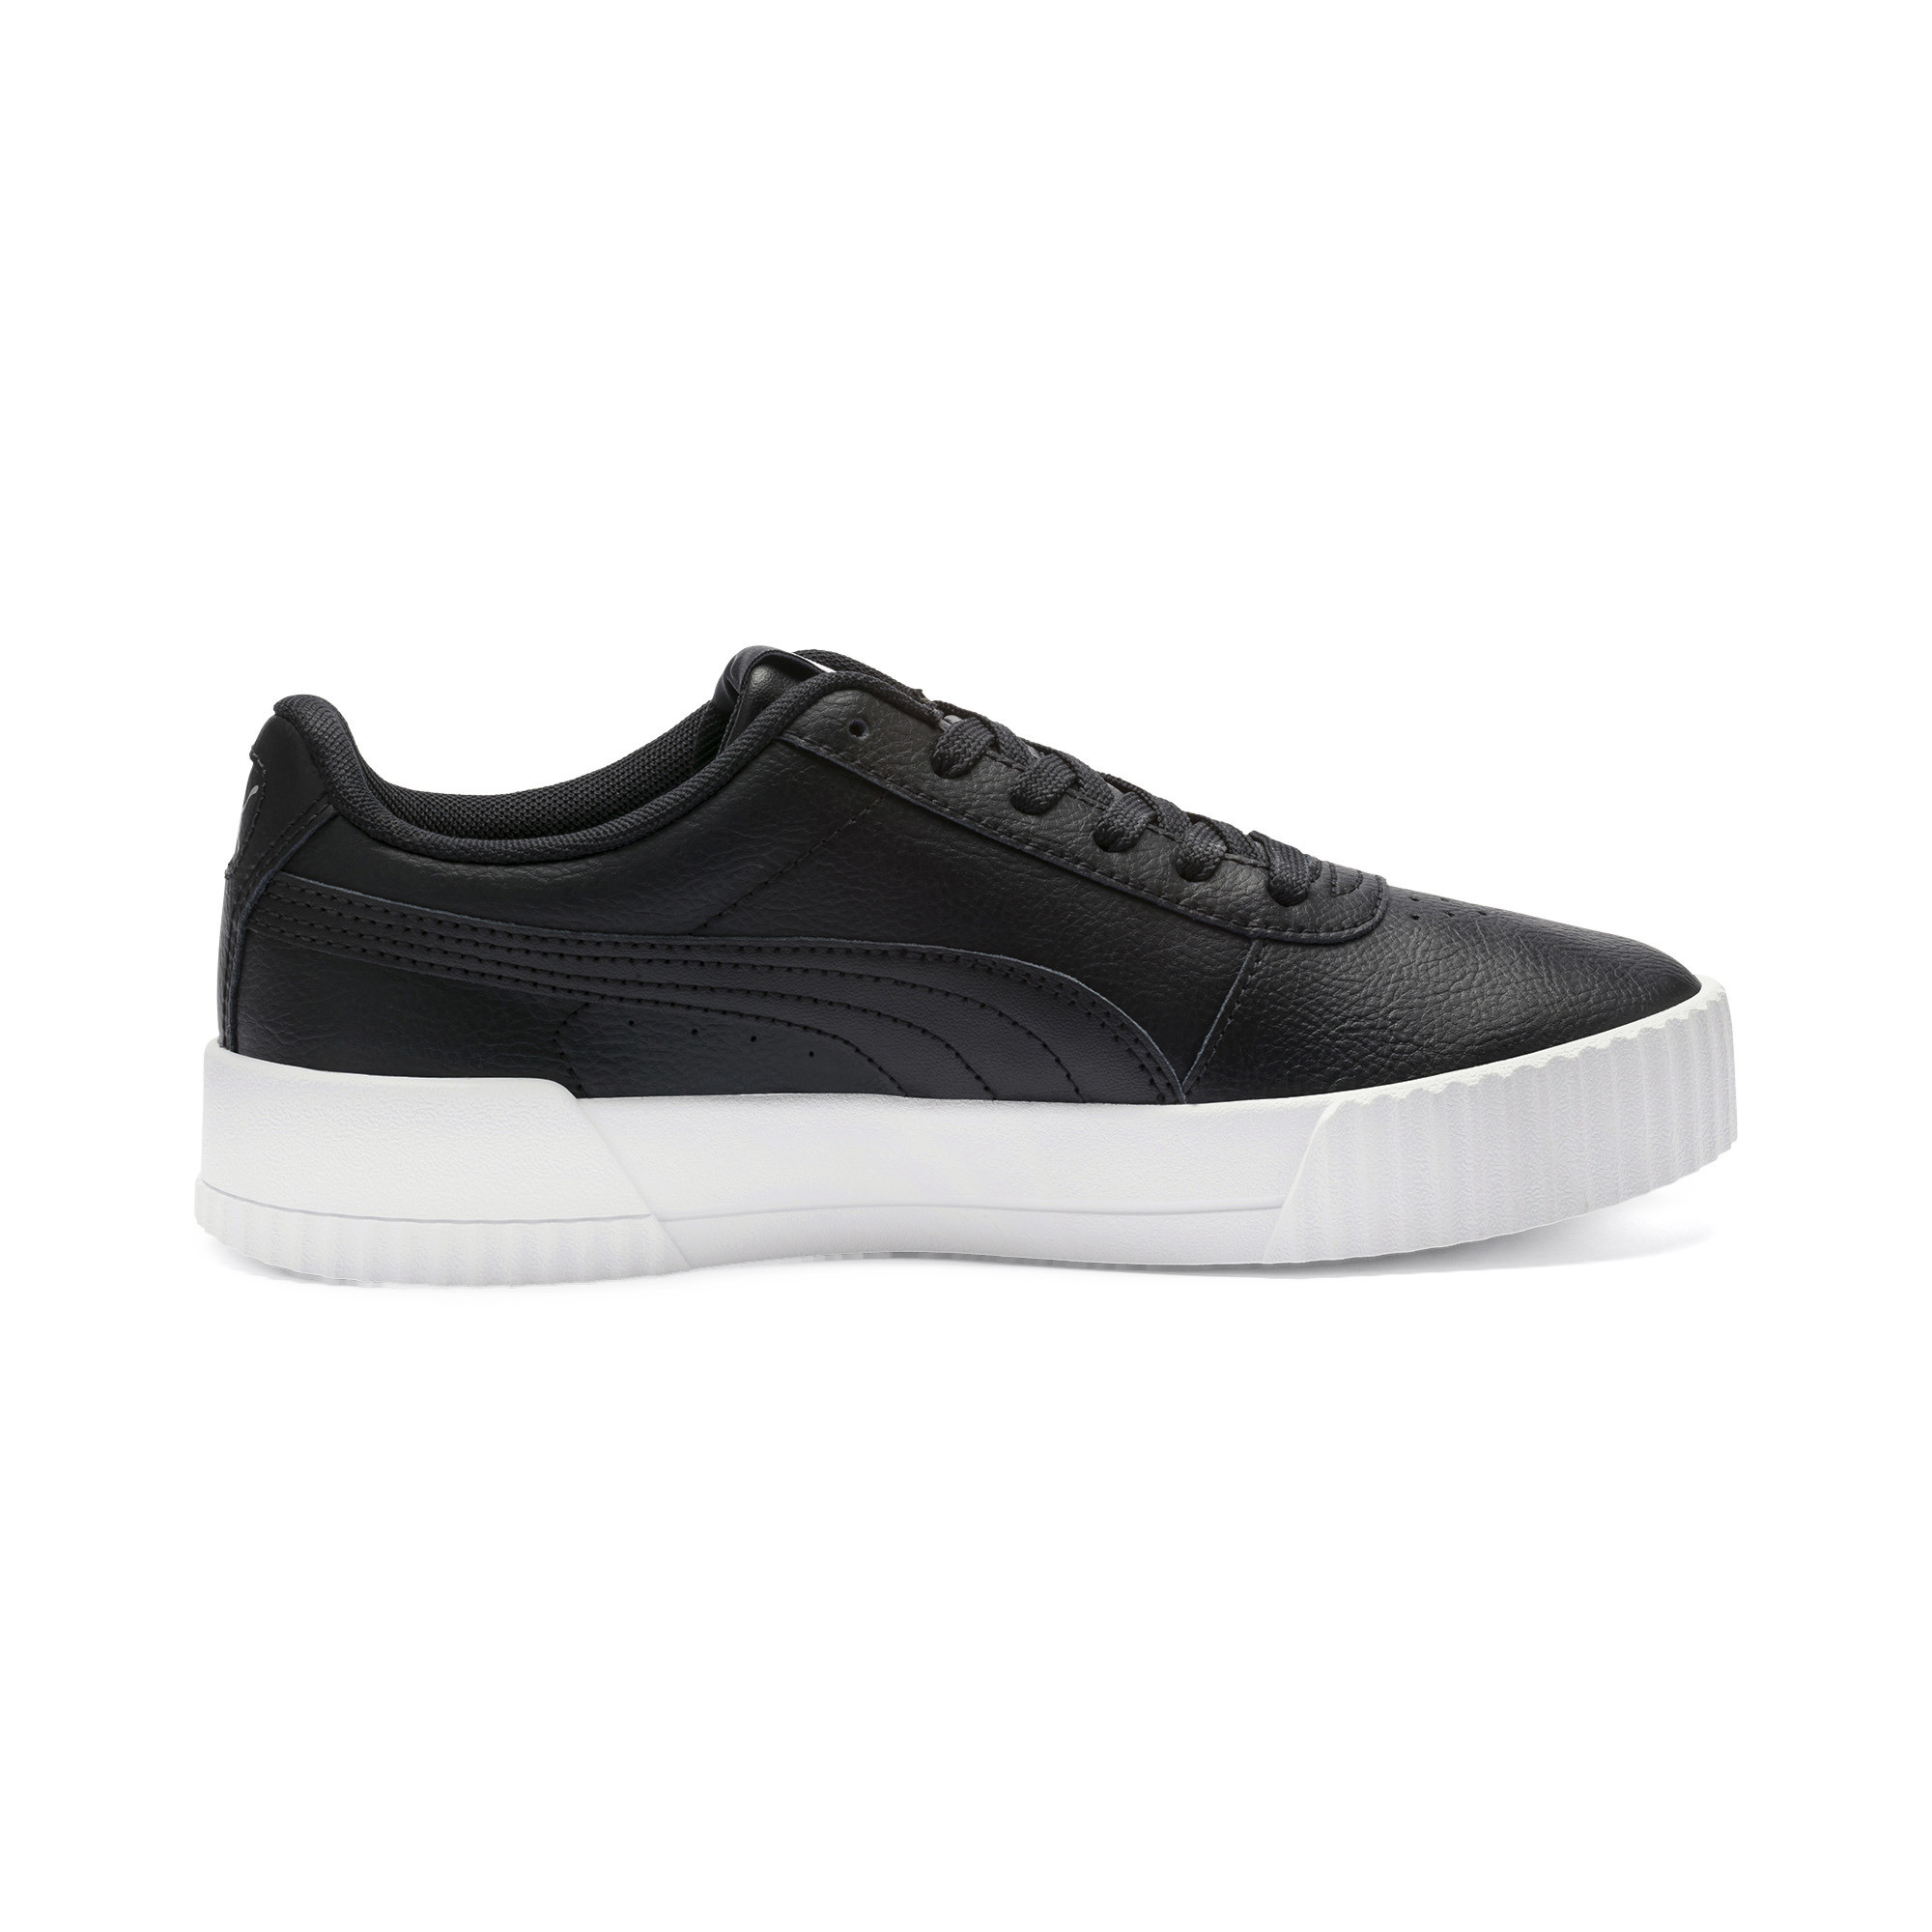 PUMA-Carina-Leather-Women-s-Sneakers-Women-Shoe-Basics thumbnail 12